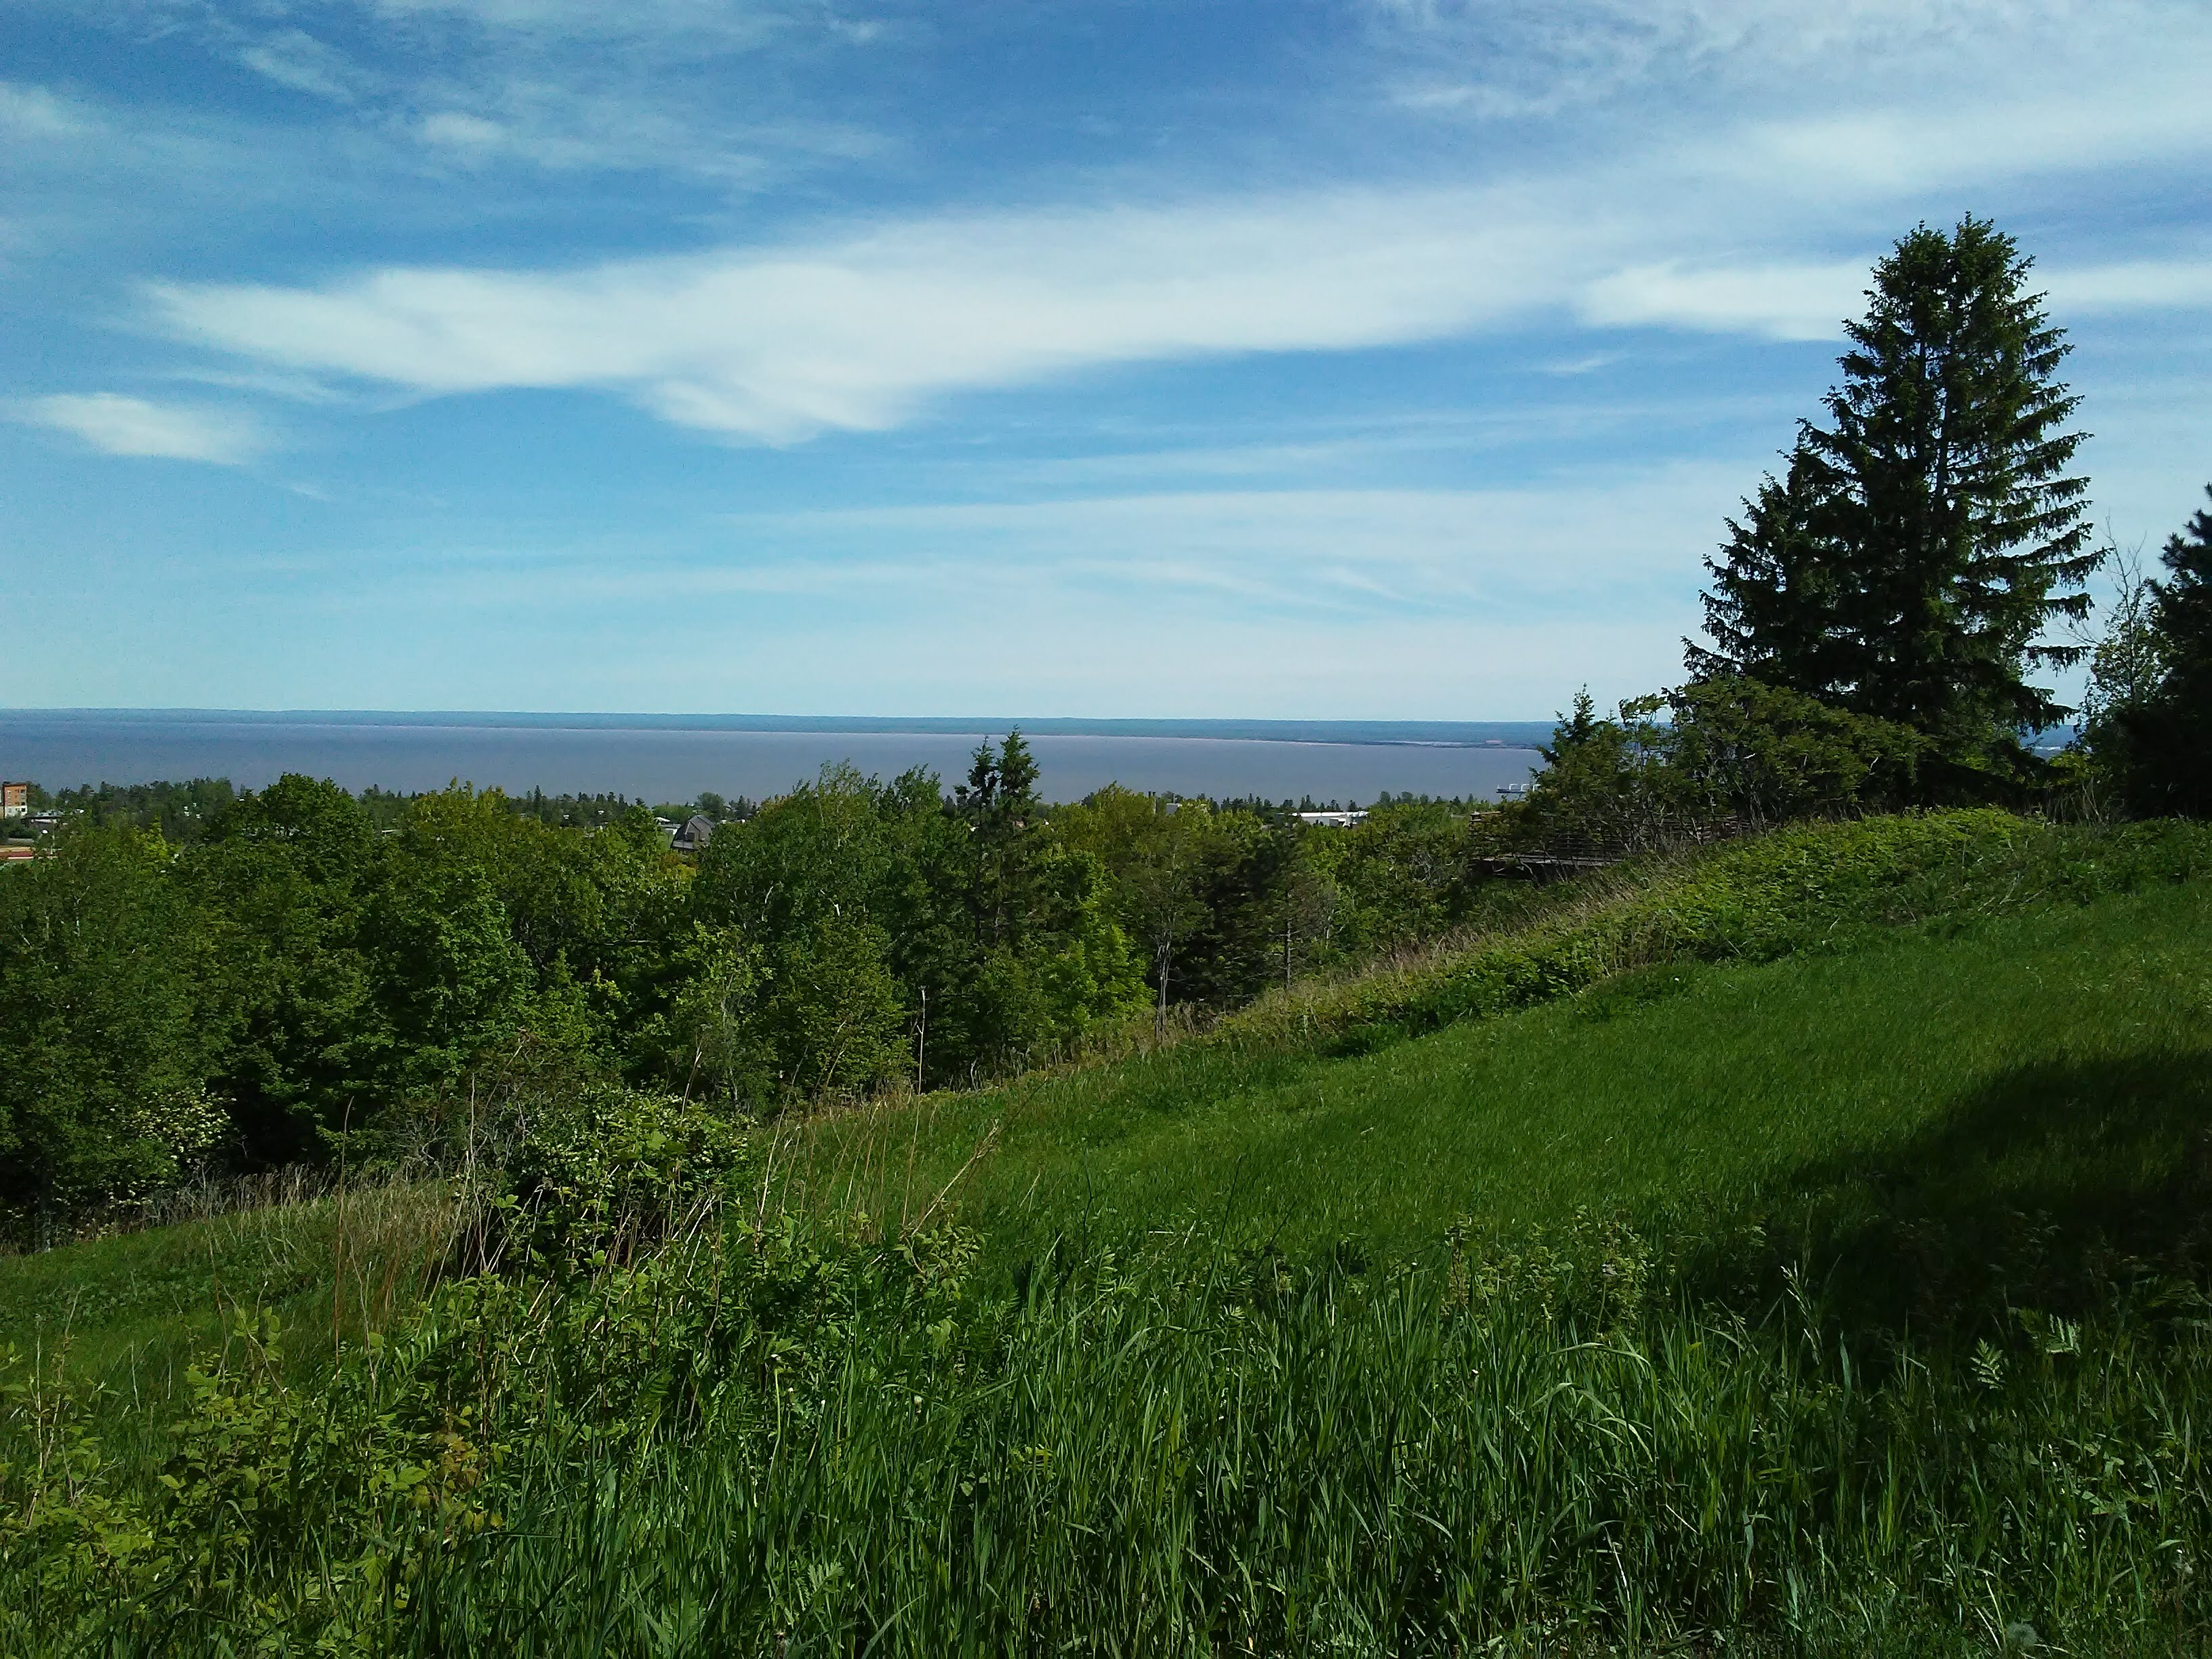 View from the overlook in Bagley Nature Area, Duluth, Minnesota facing southeast.